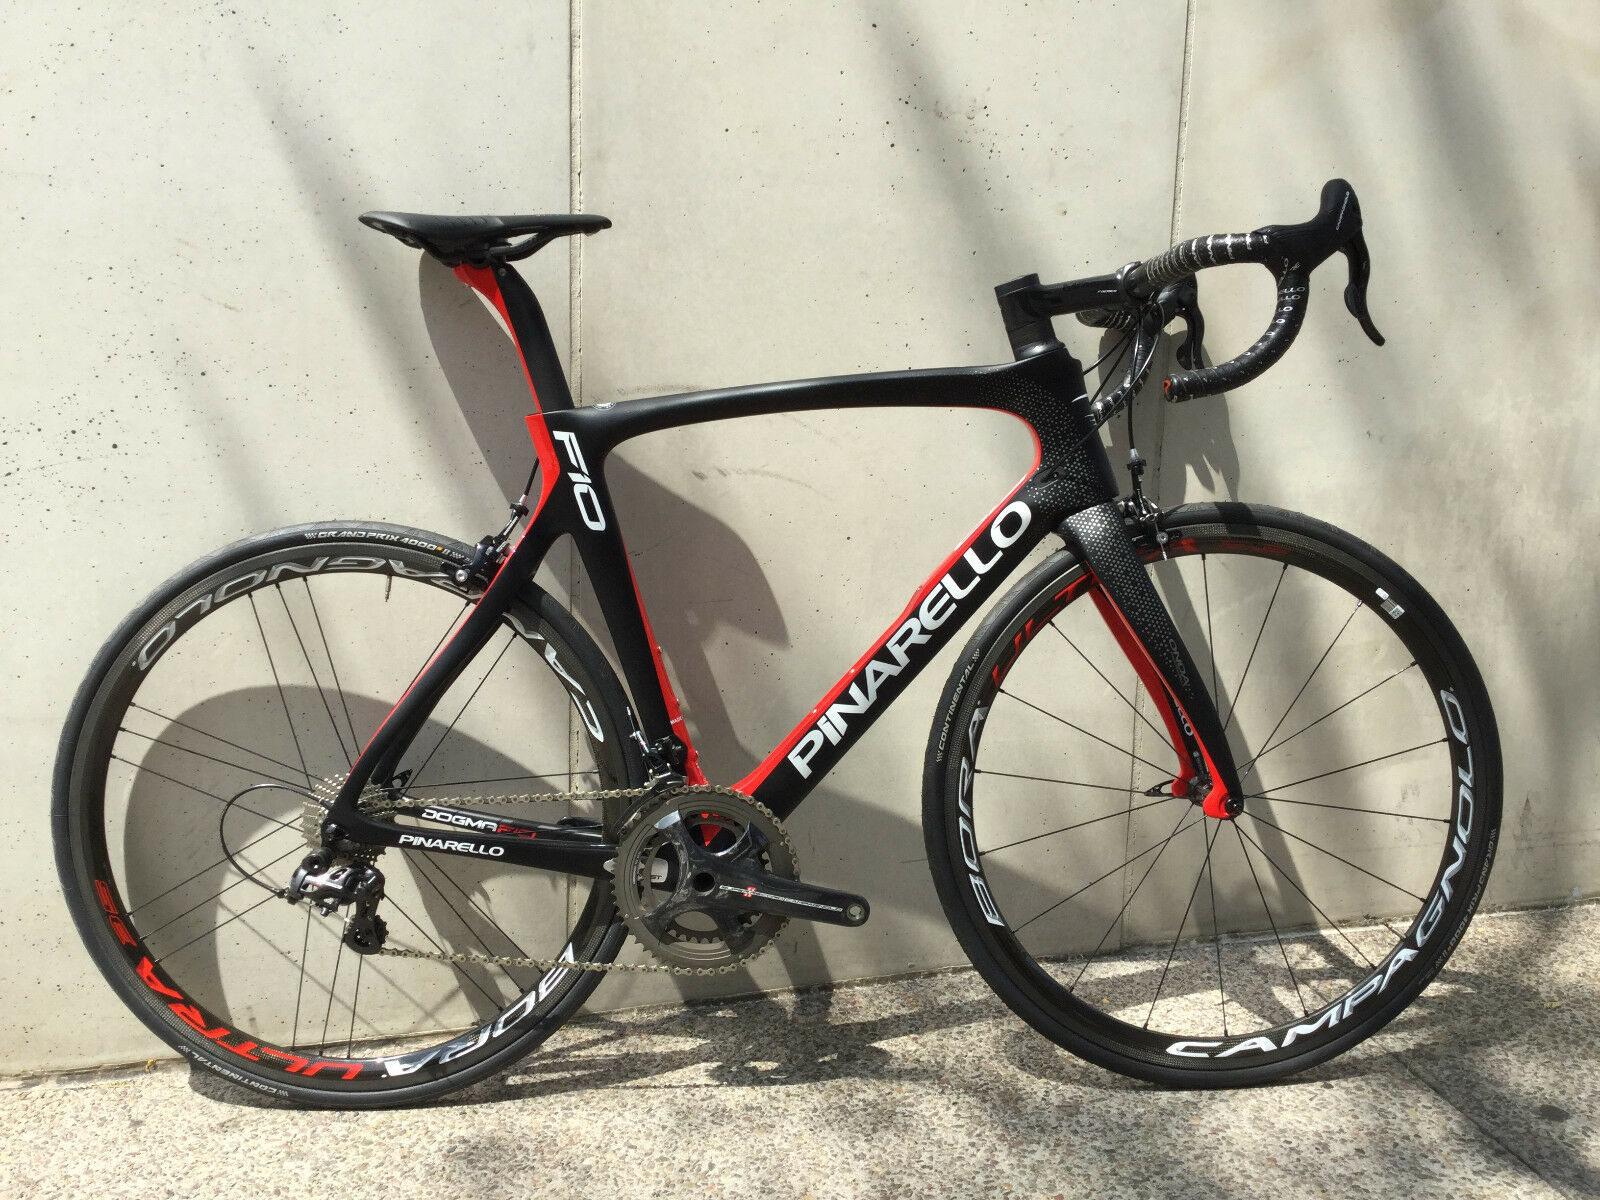 Pinarello Dogma F10 Super Record Build - 57.5